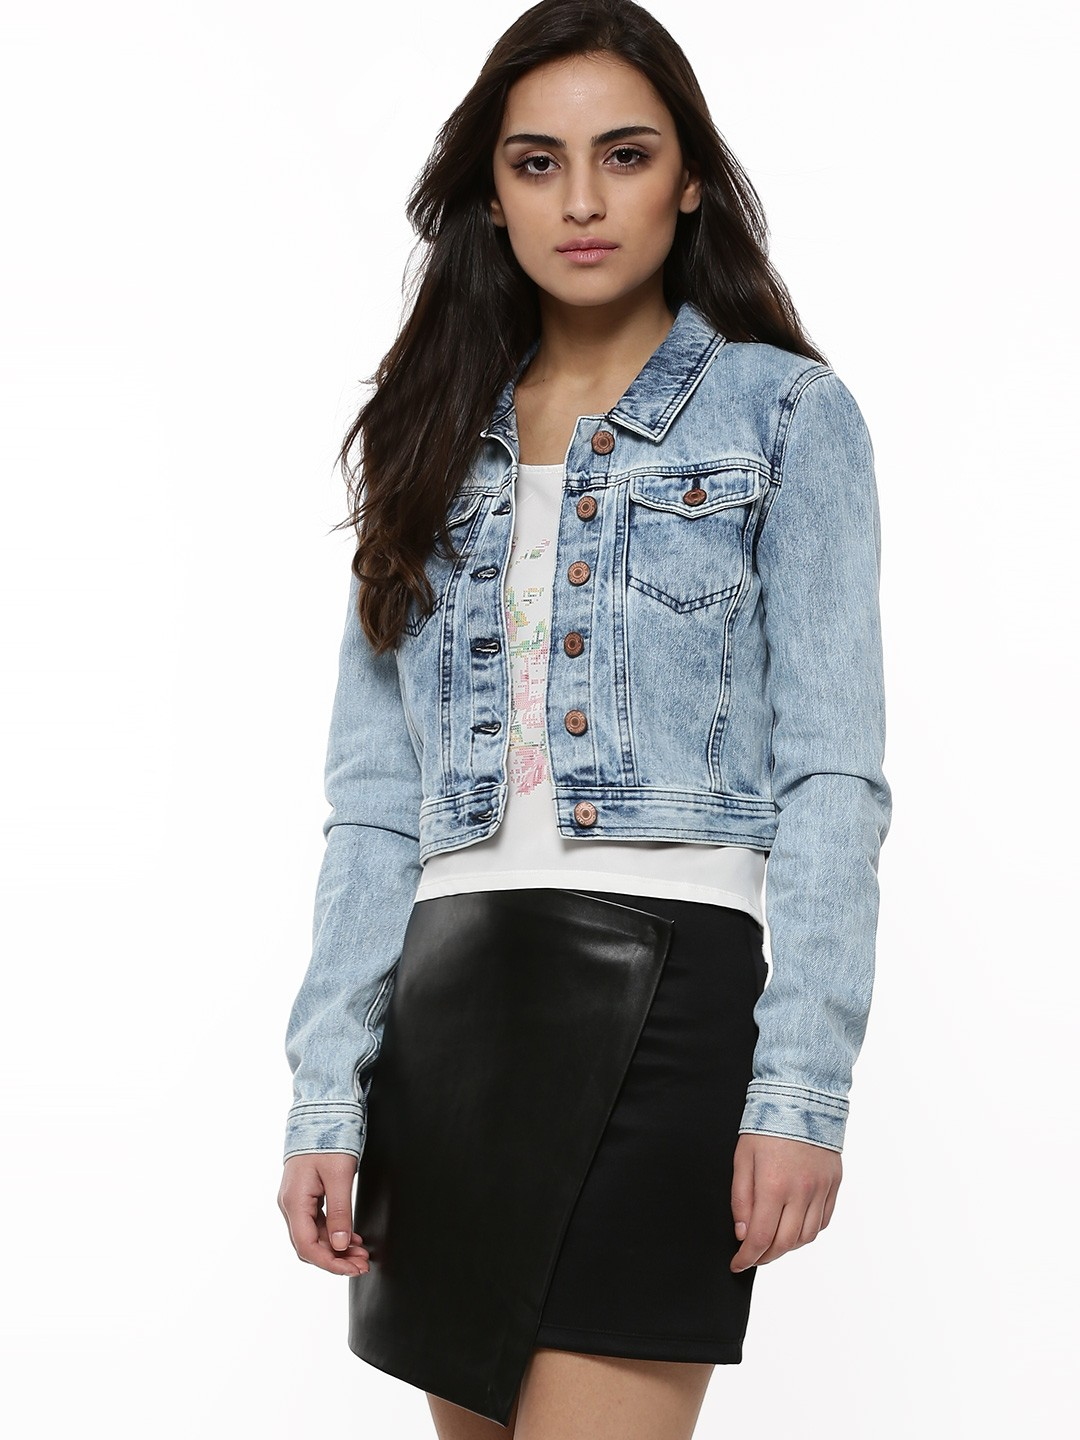 Buy VERO MODA Denim Jacket For Women - Women's Blue Jackets Online ...